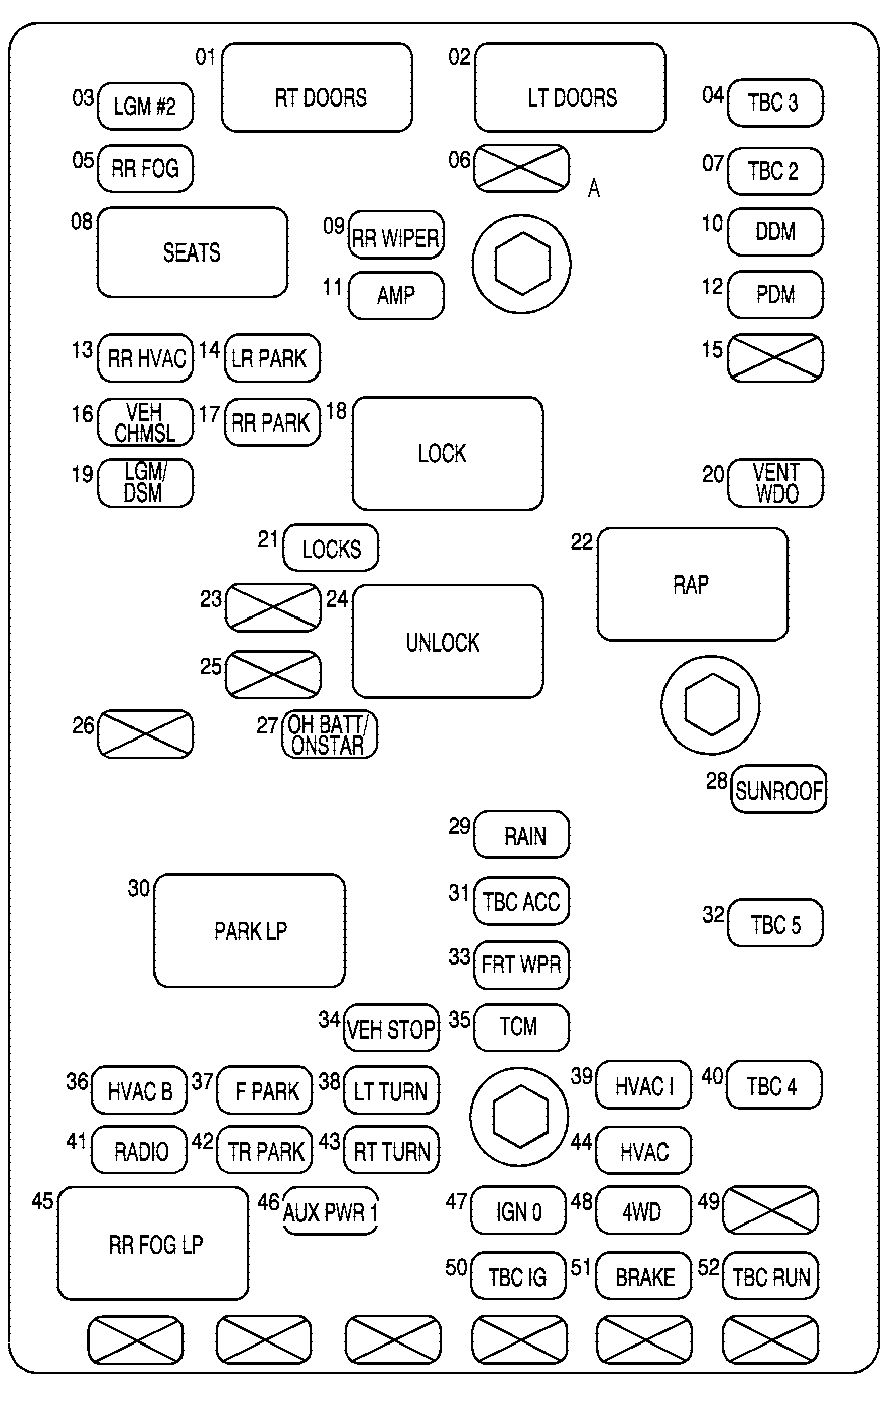 2006 silverado tbc fuse box diagram   35 wiring diagram